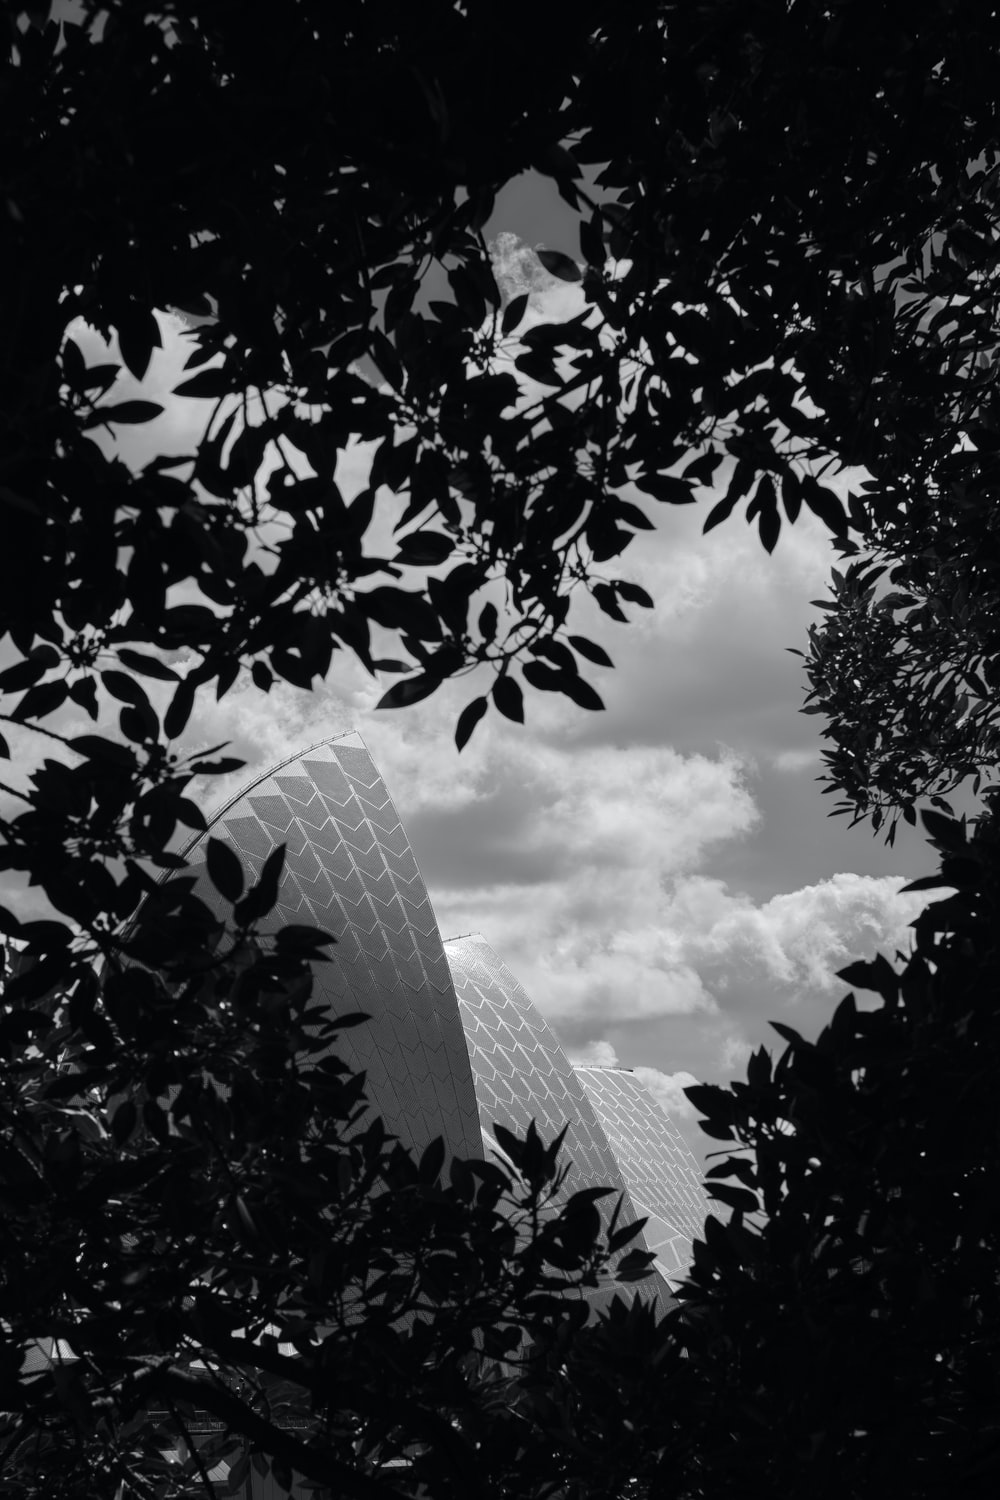 grayscale photo of trees near building